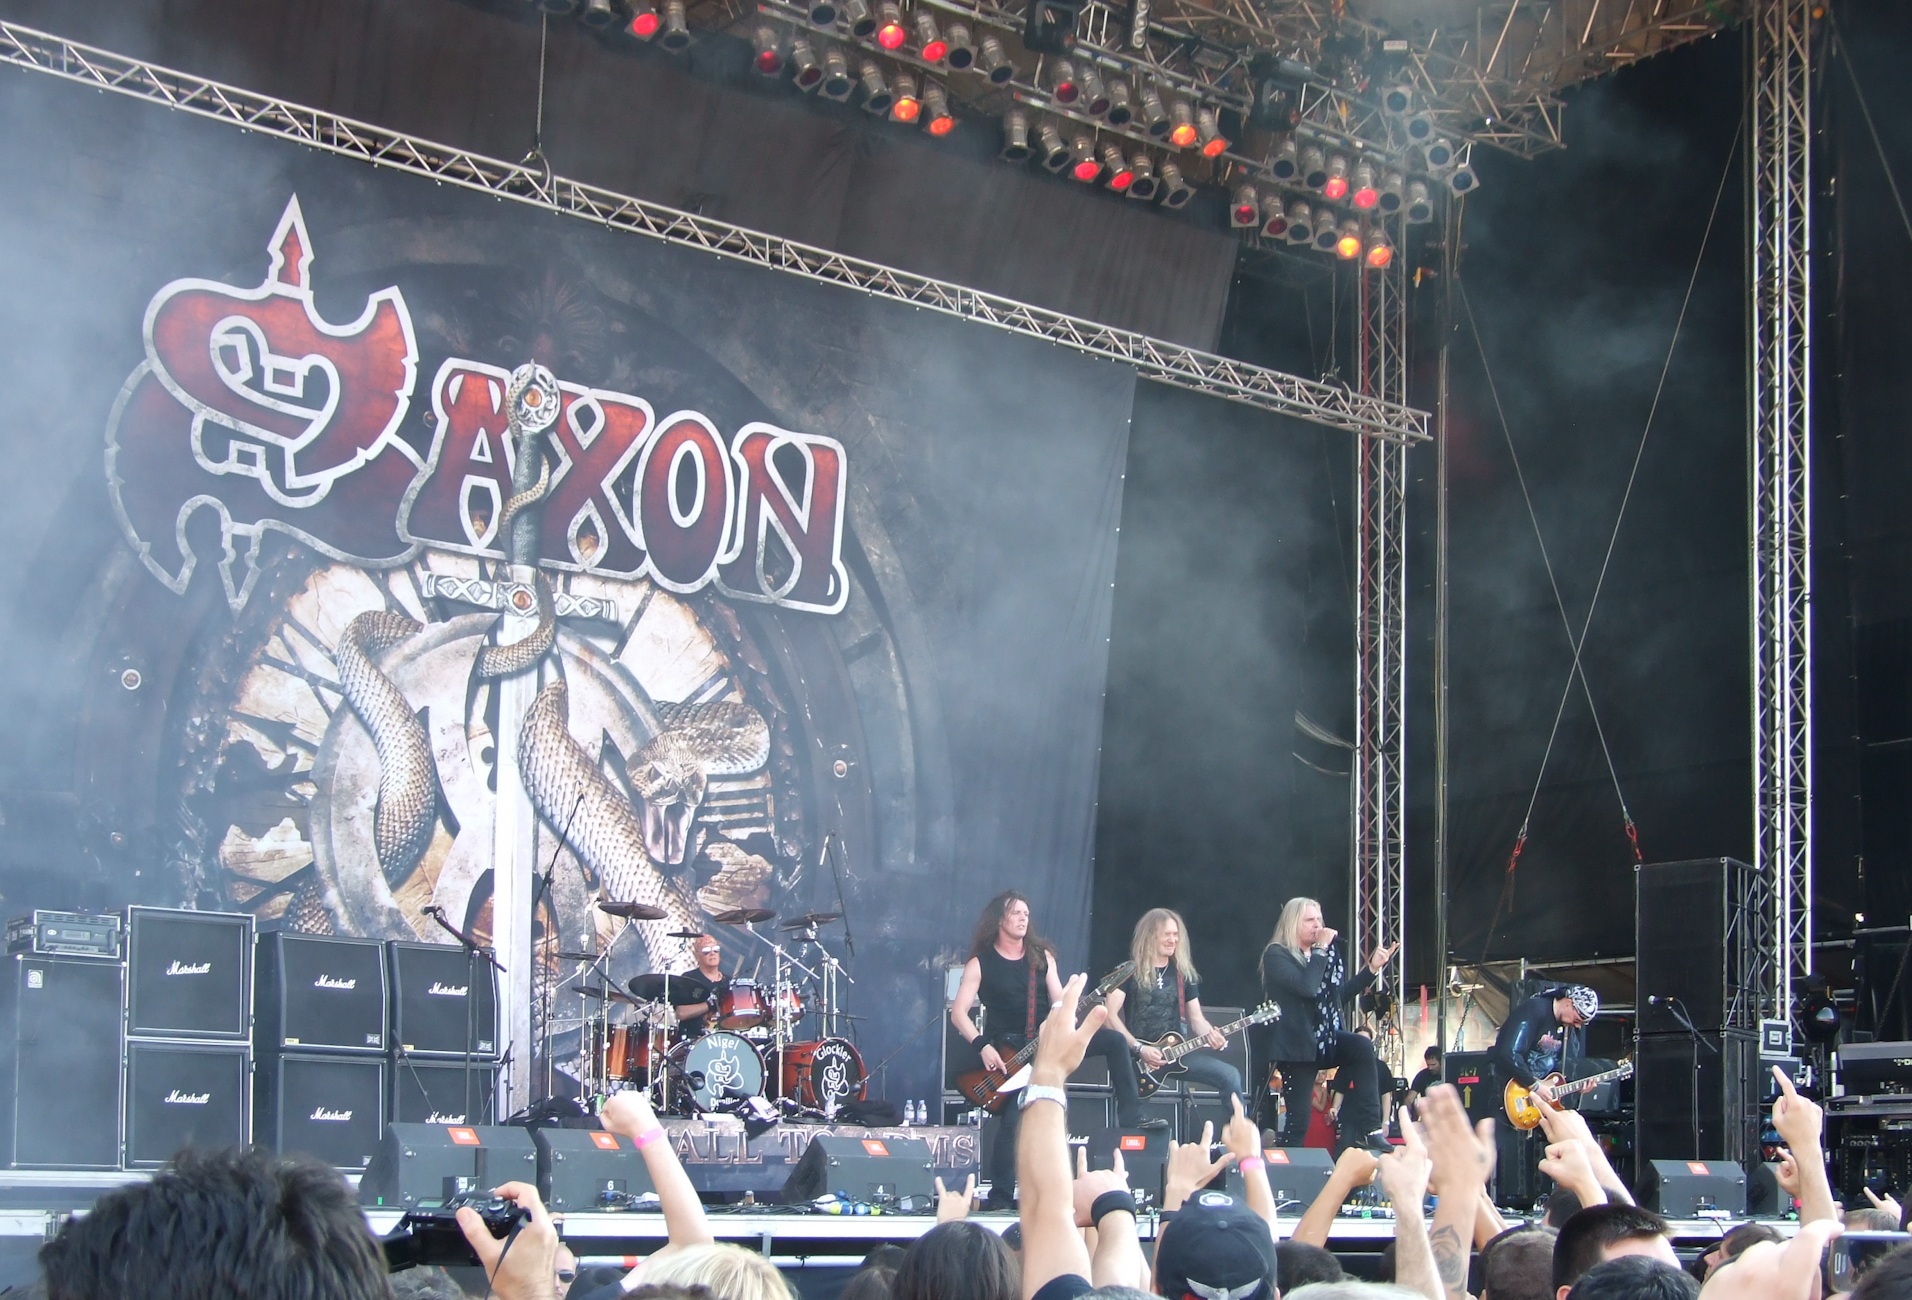 Saxon Sofia Rocks Fest 2011 Tonight We're Gonna Rock You With 30 Facts About This Is Spinal Tap!